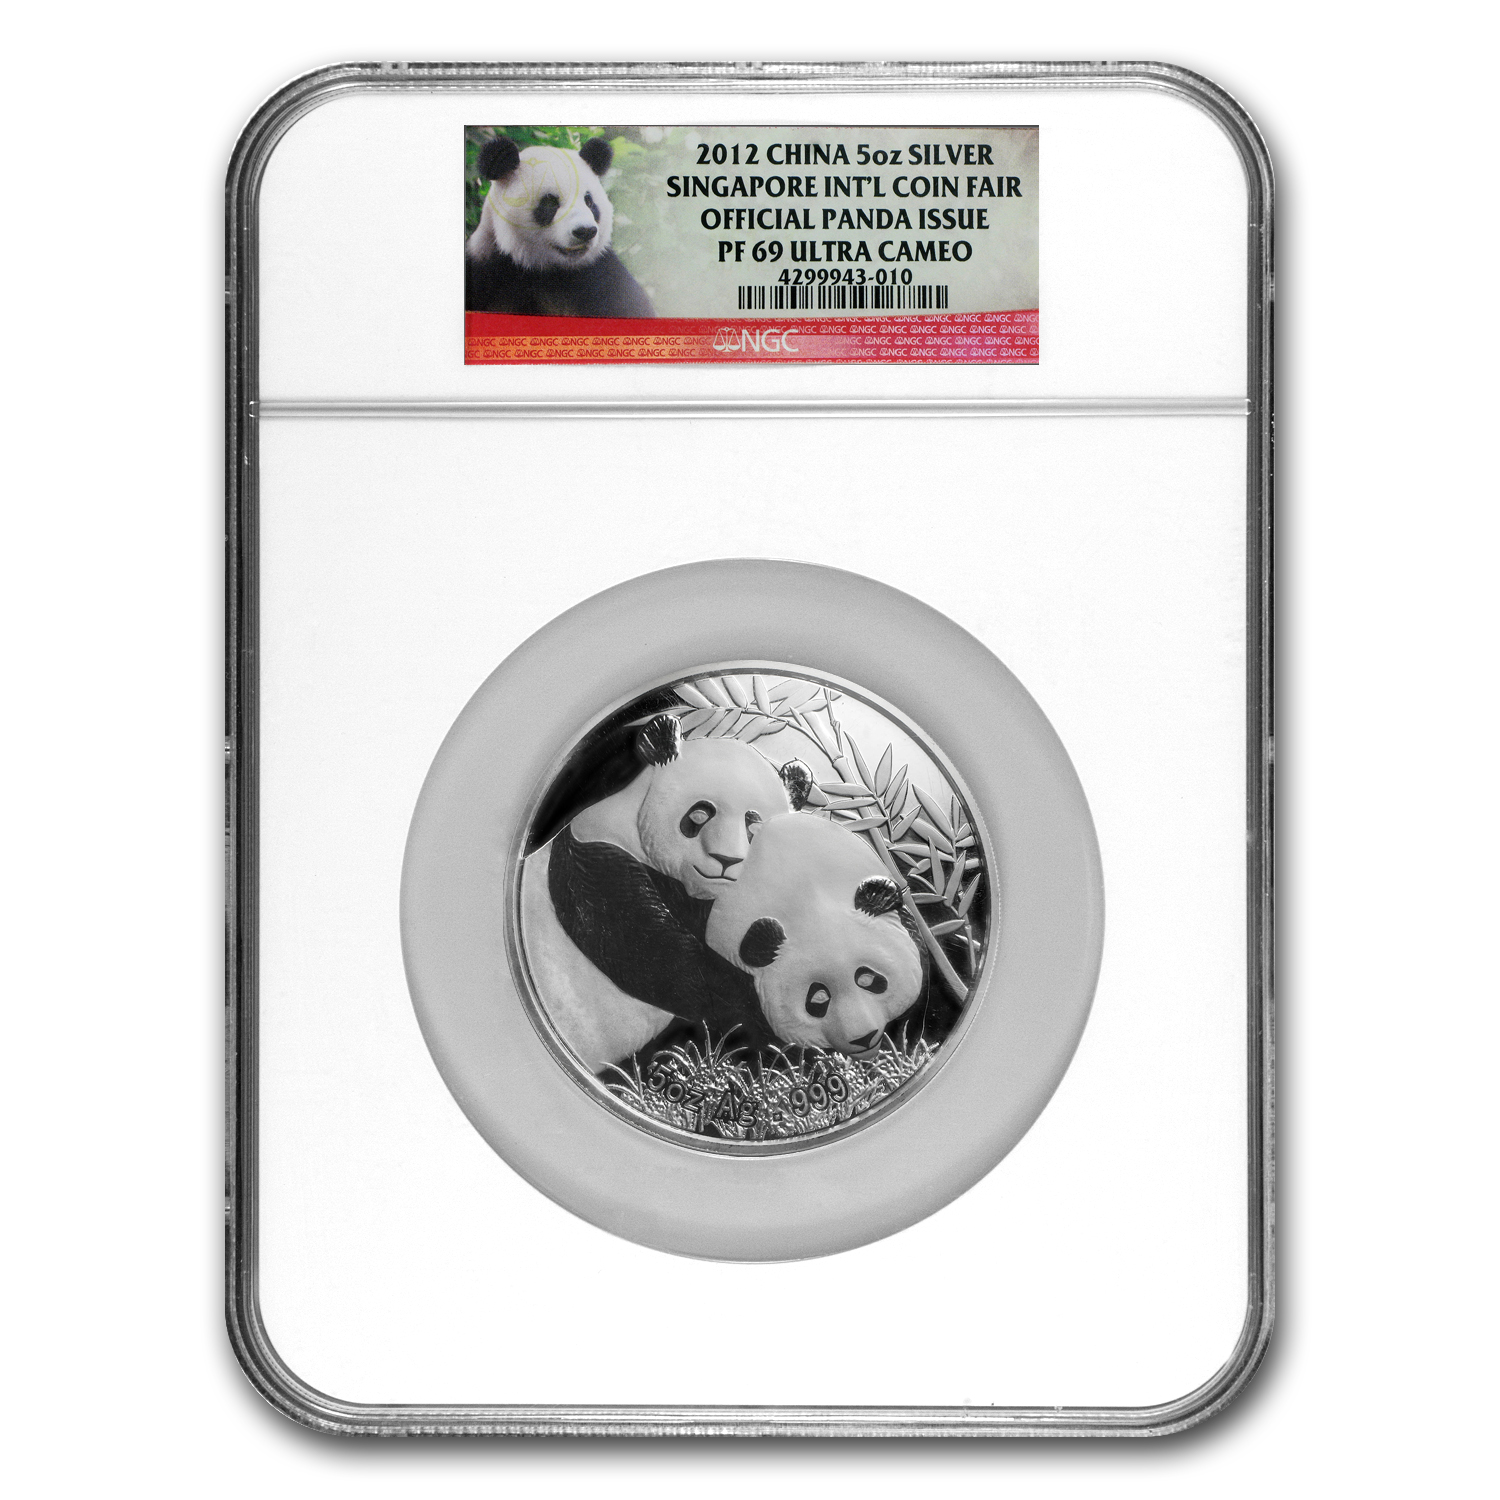 2012 - (5 oz) Silver Panda Proof NGC PF-69